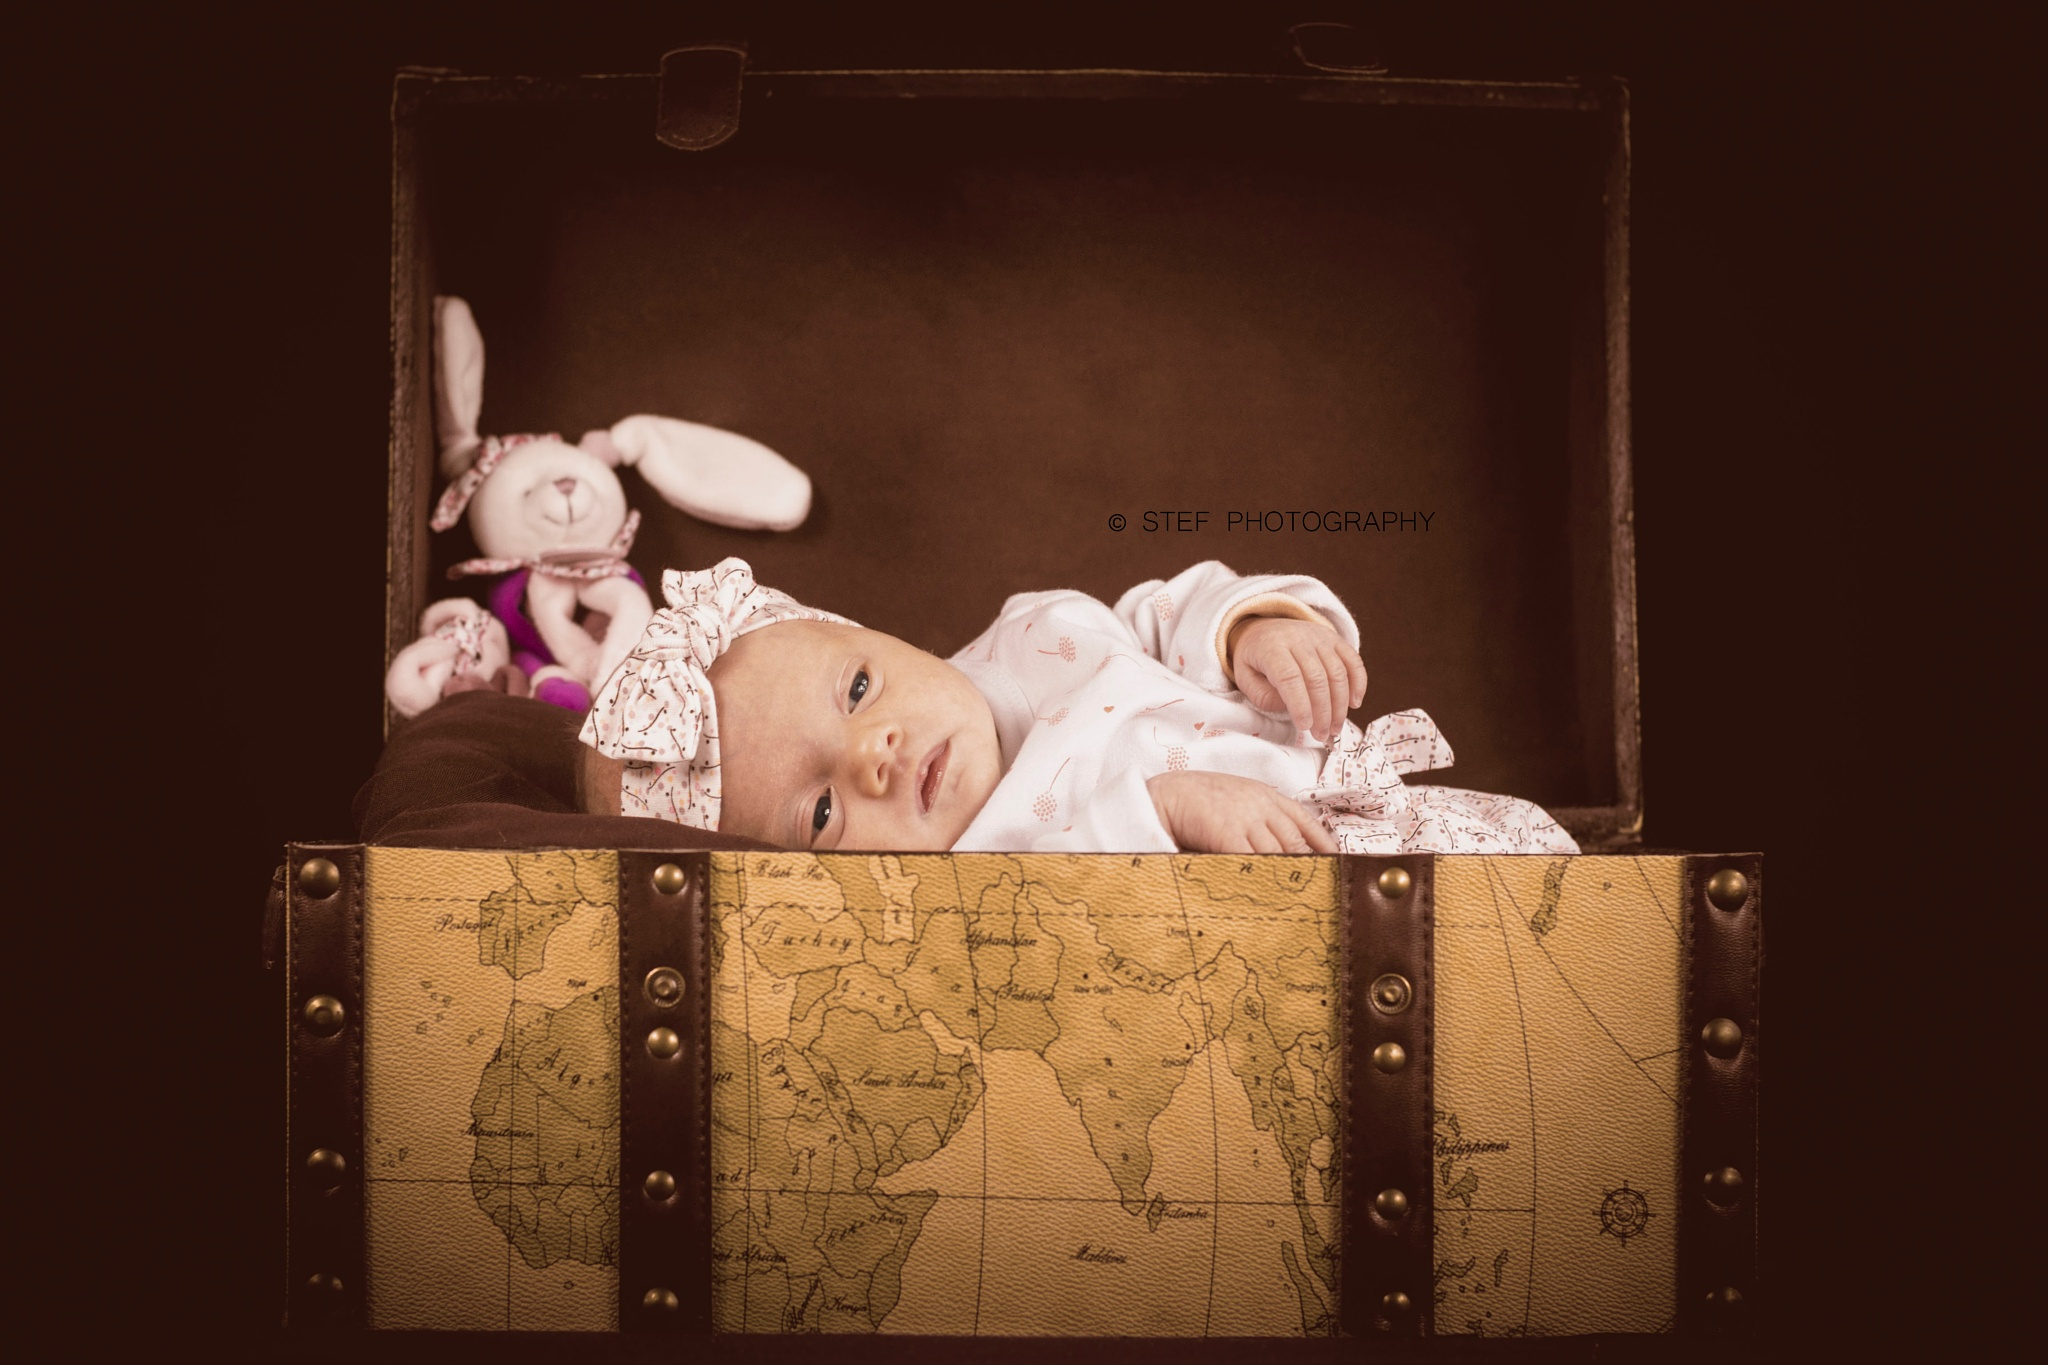 The greatest gift of life by Stef Photography